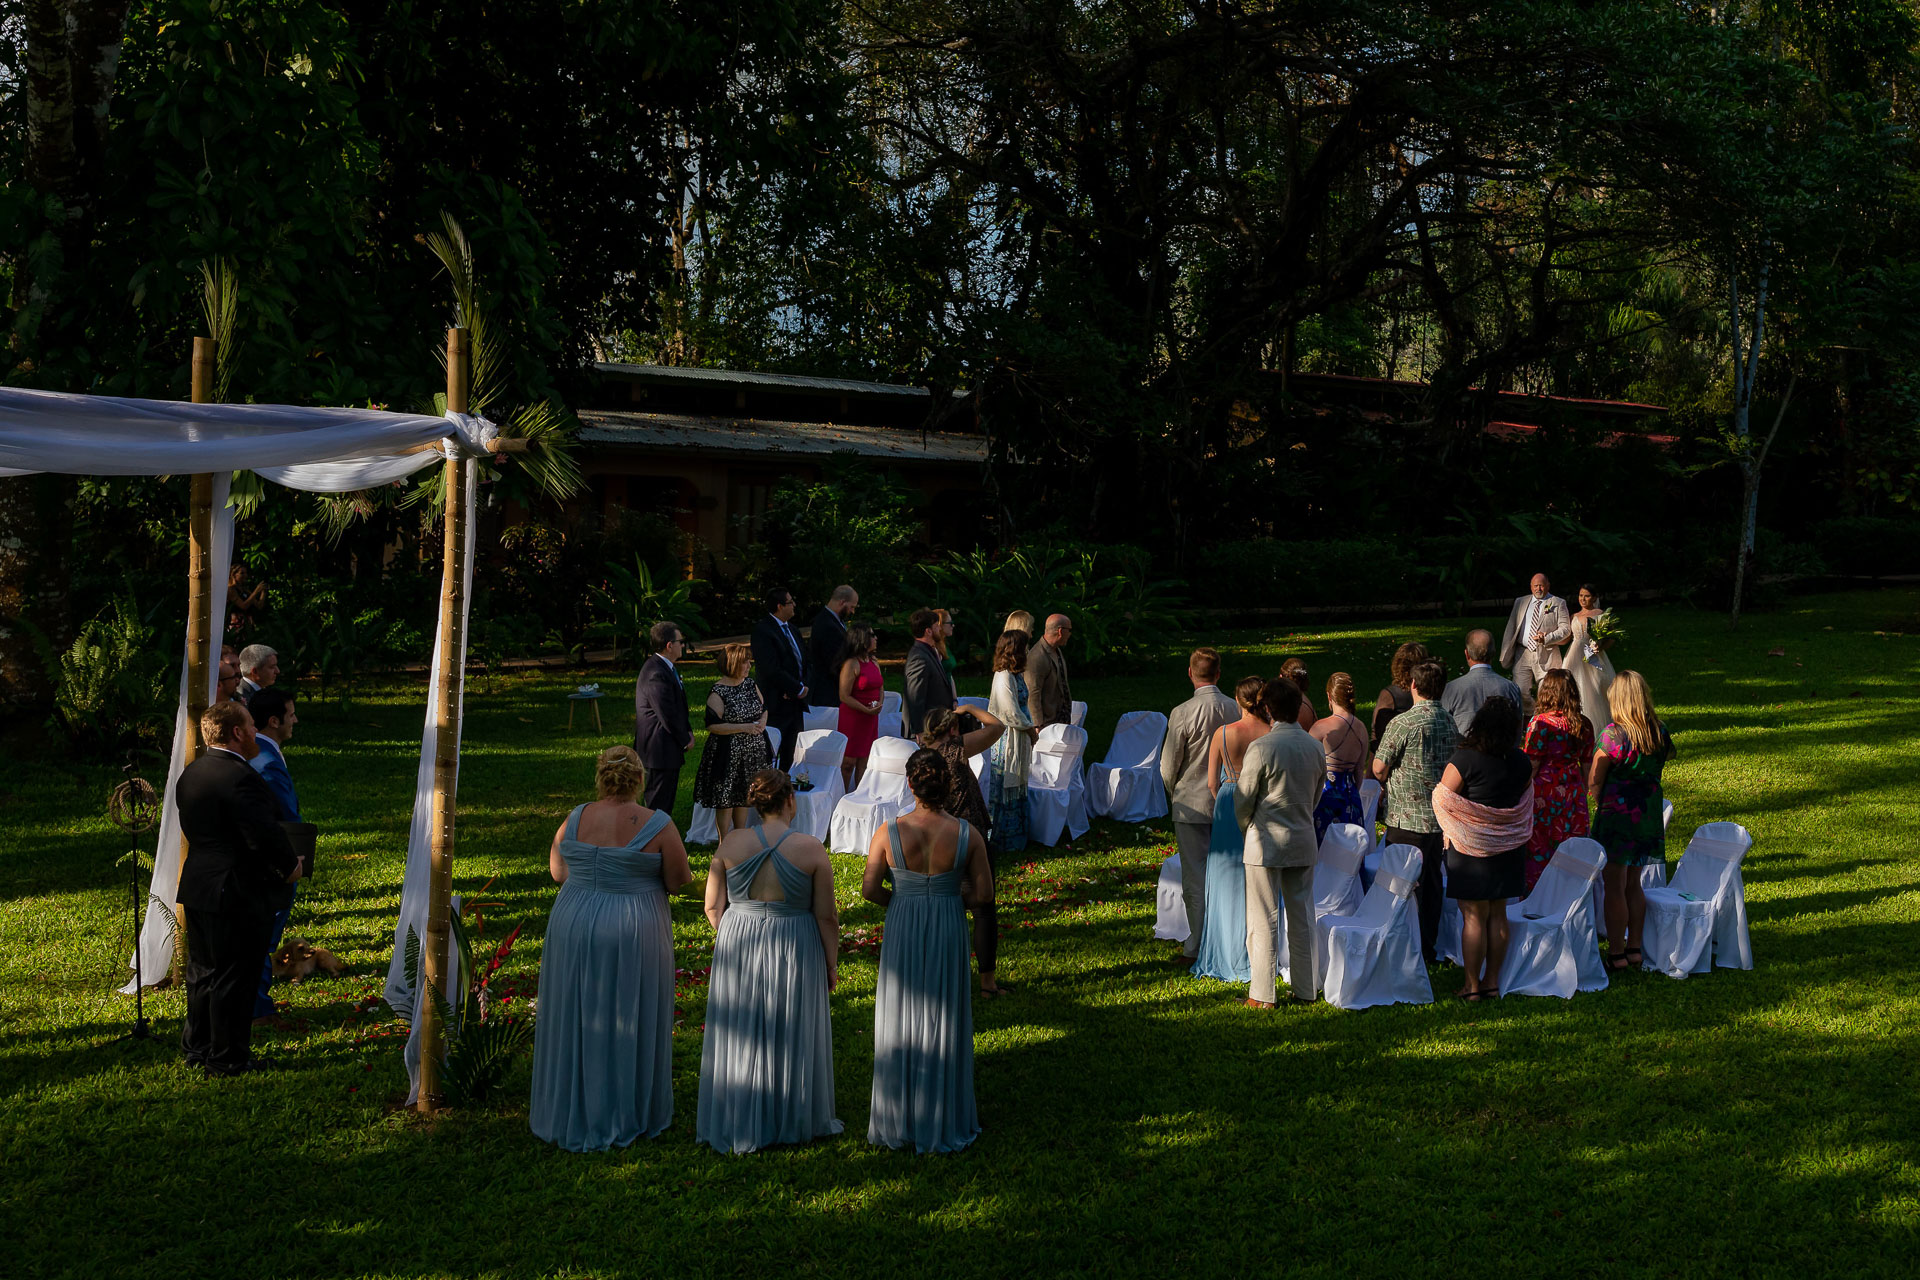 Jaco, Costa Rica Outdoor Elopement Ceremony Image   a small ceremony early in the afternoon